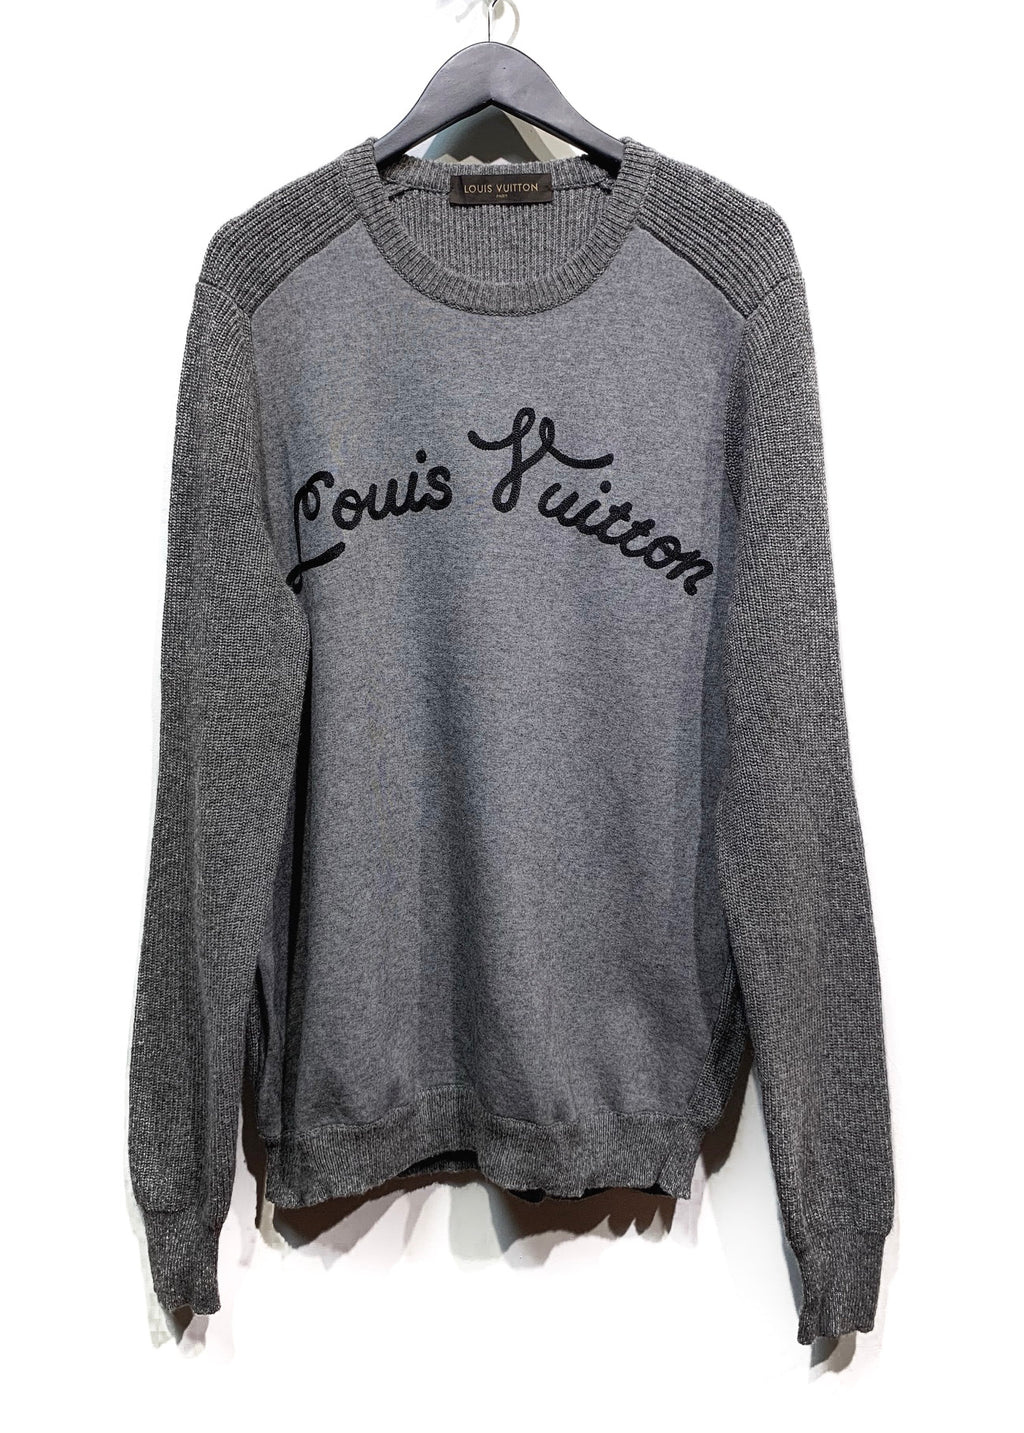 Louis Vuitton Grey Camelhair Blend Logo Embroidered Ribbed Knit Sweater